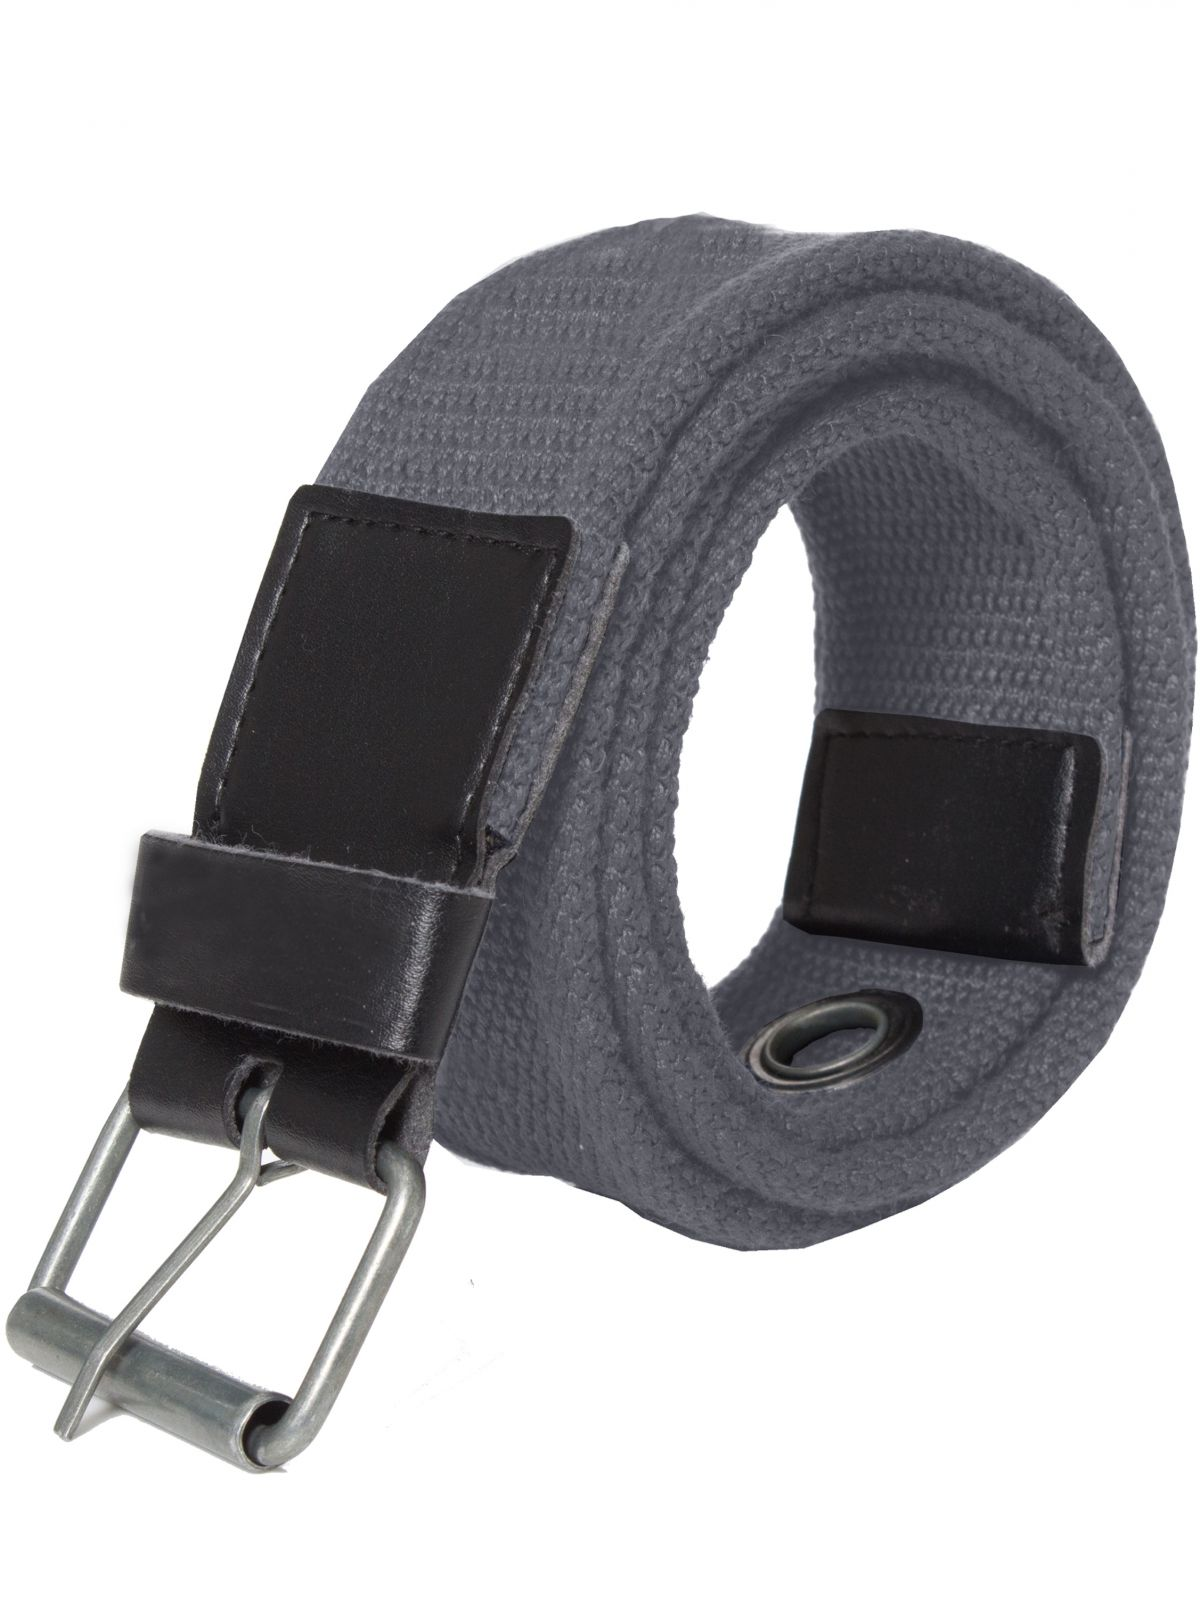 Accessories | Kruze Designer Mens Canvas Belt For Jeans